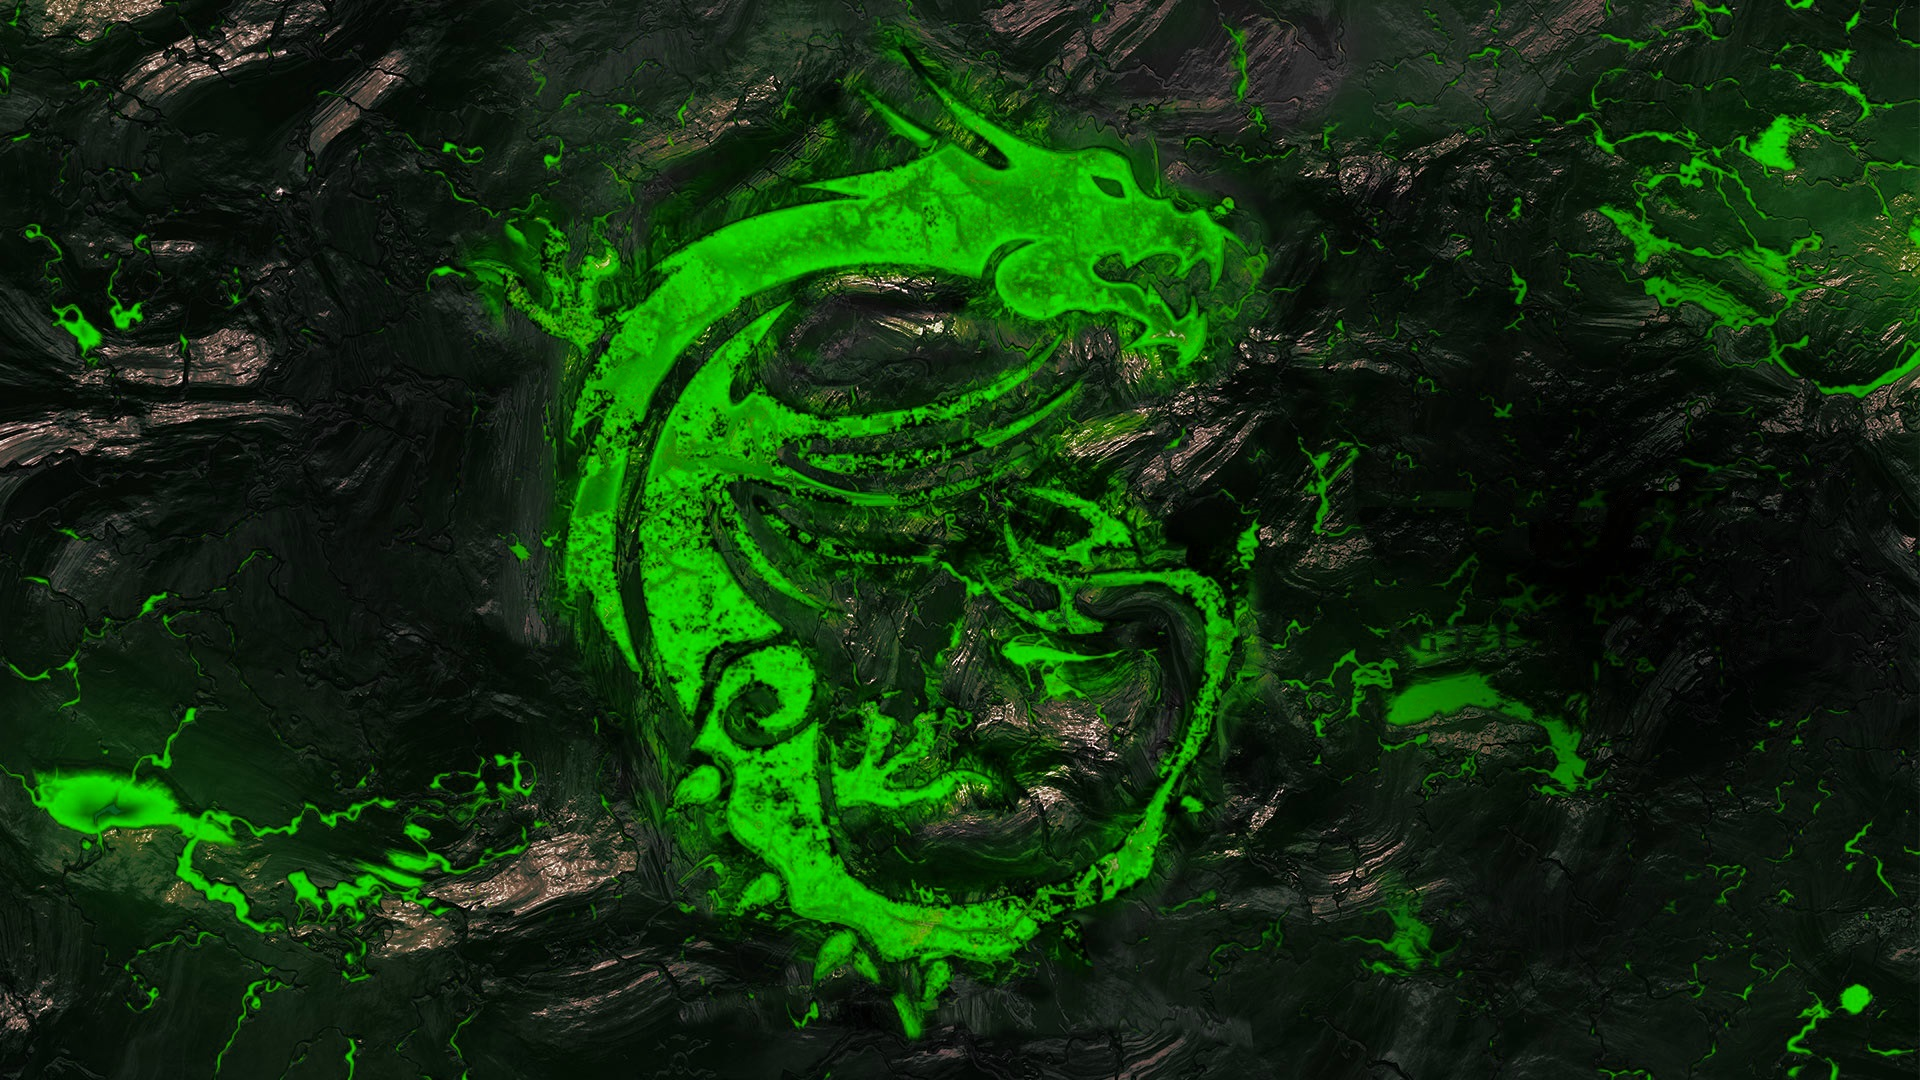 MSI's Desktop Background - Recolored as Razer's Green ...